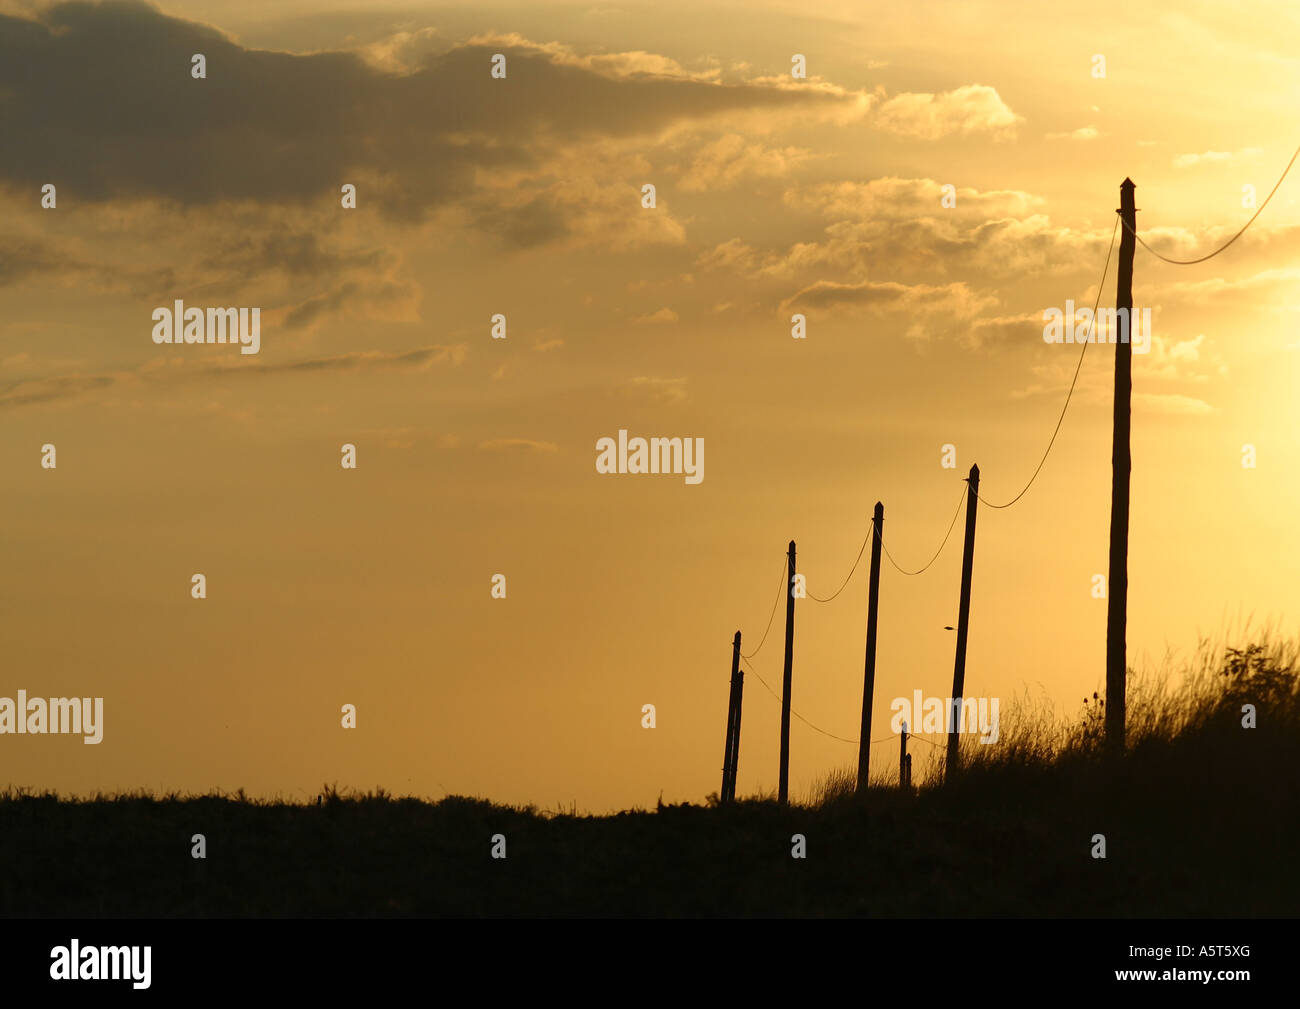 Telephone posts silhouetted at sunset - Stock Image